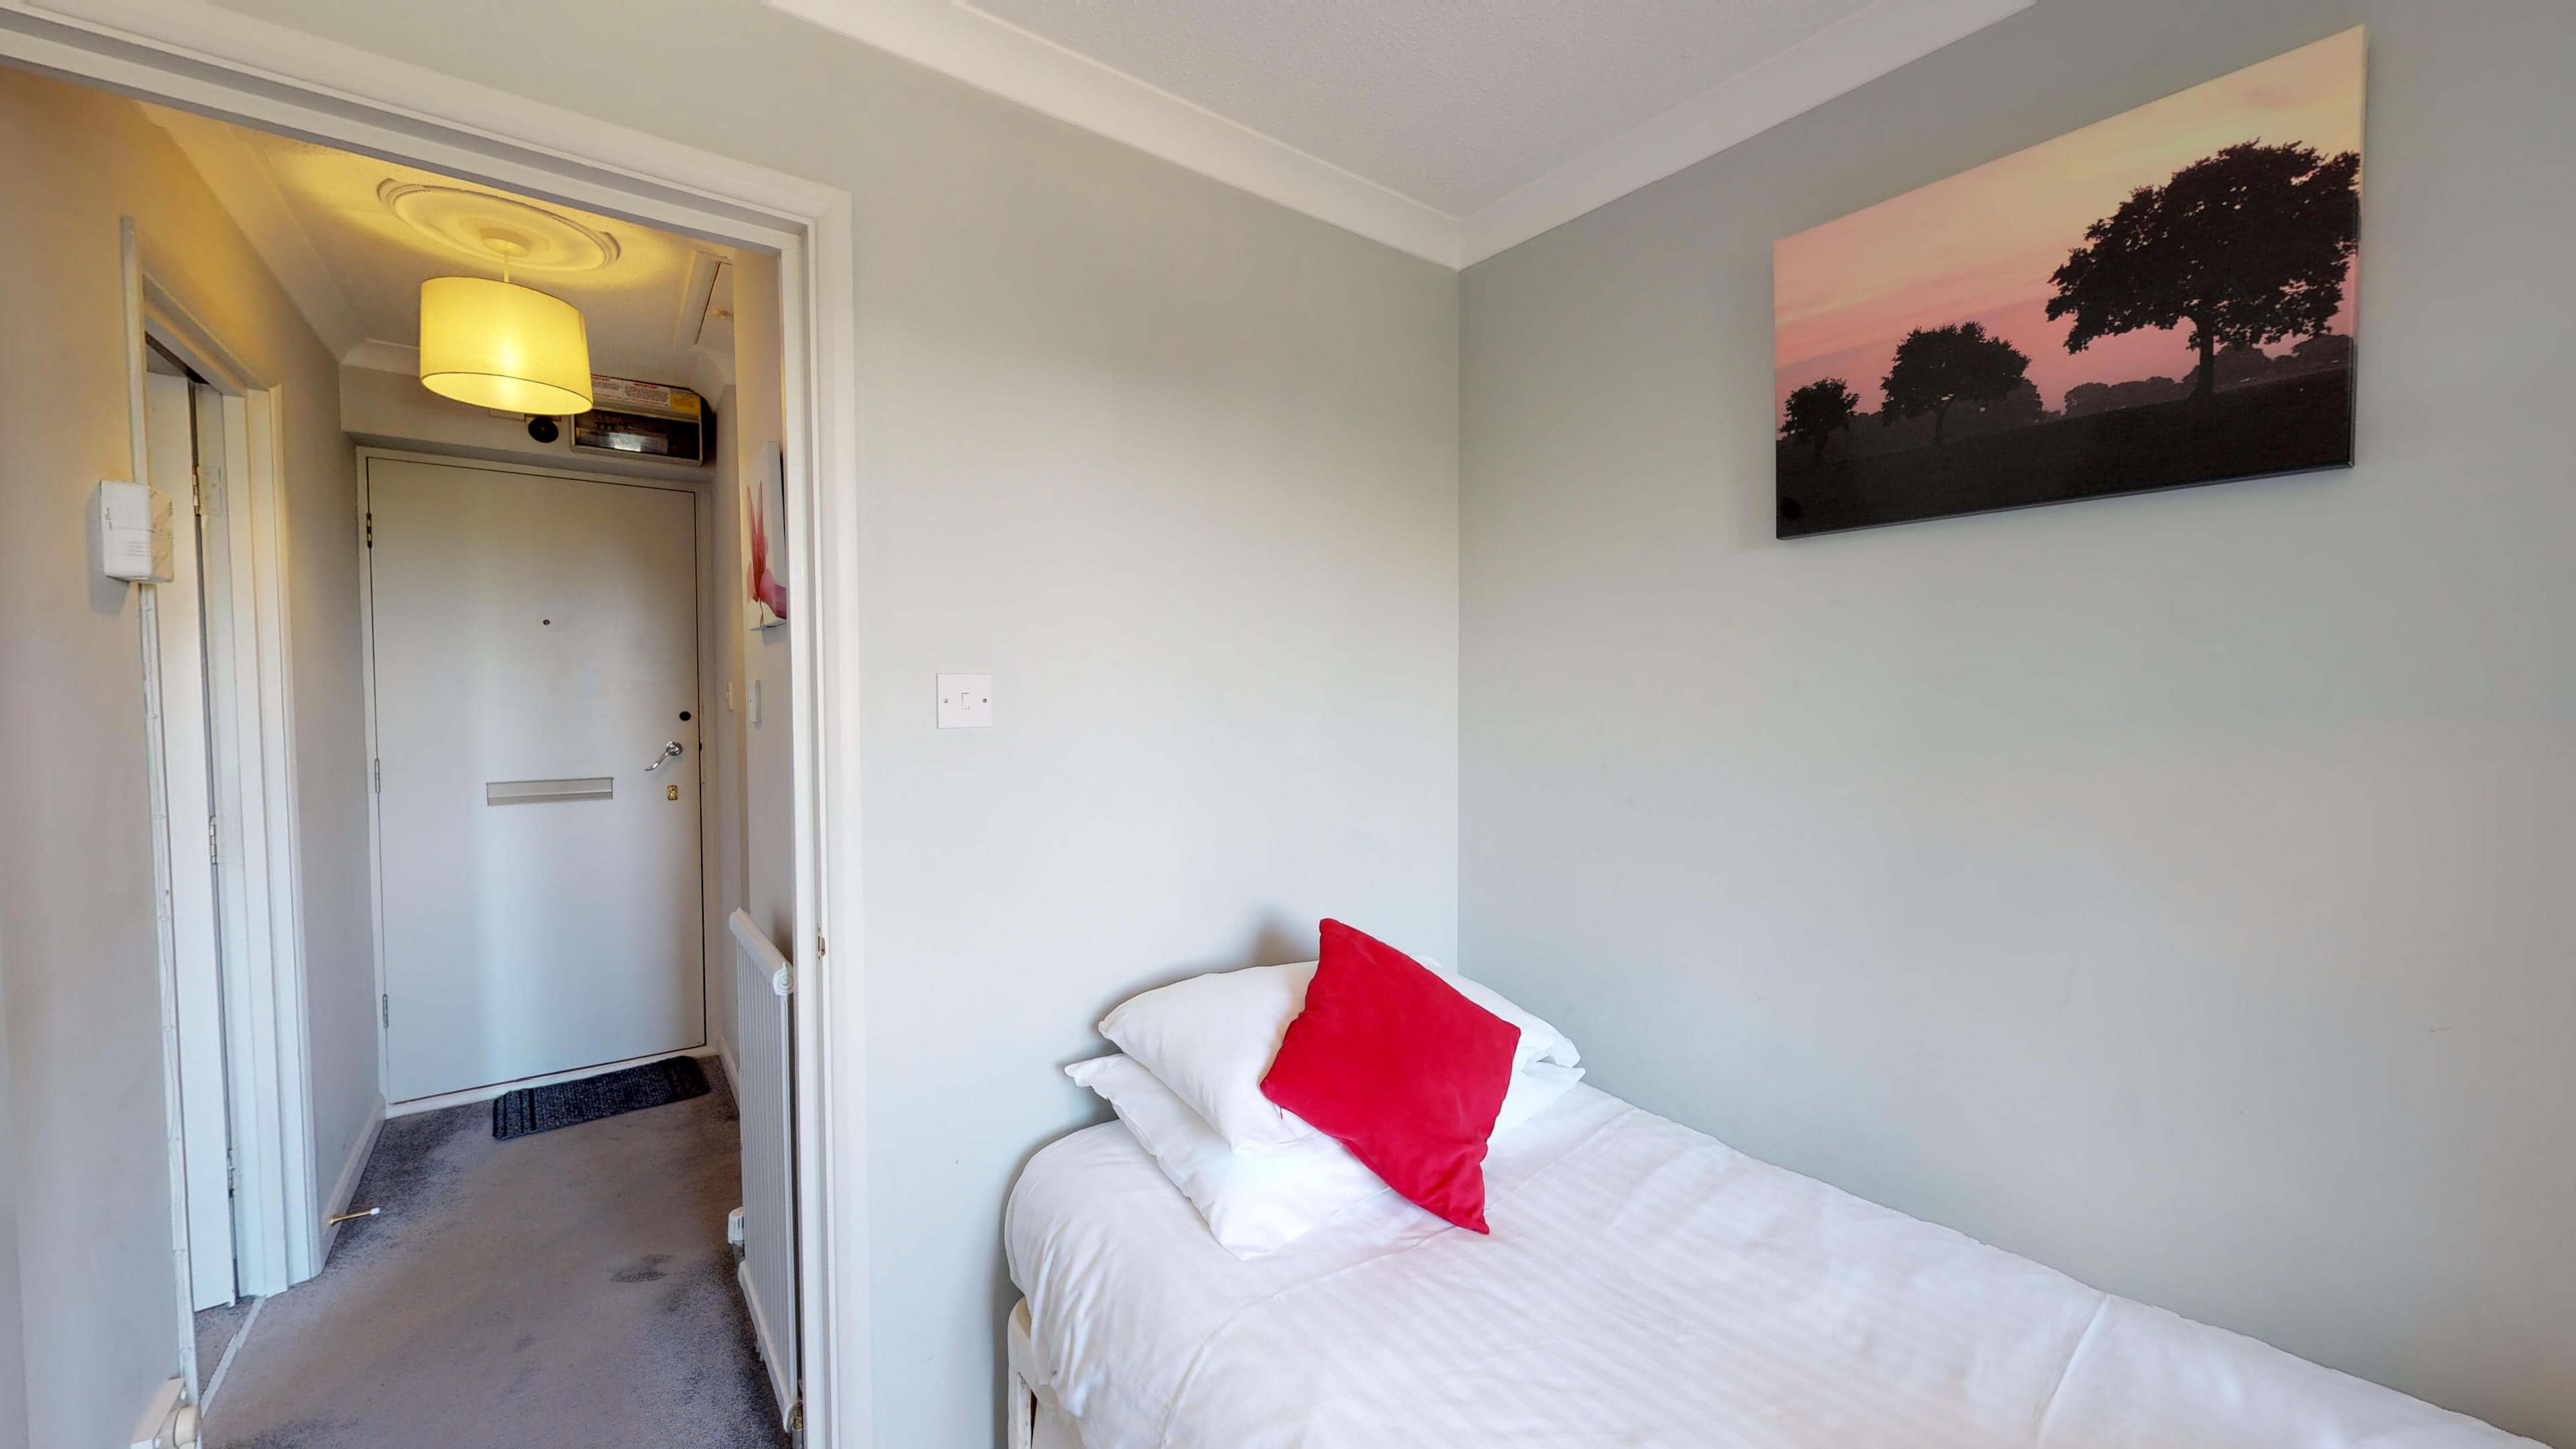 Short Stay Oxford The Firs Apartment 05232019 065017